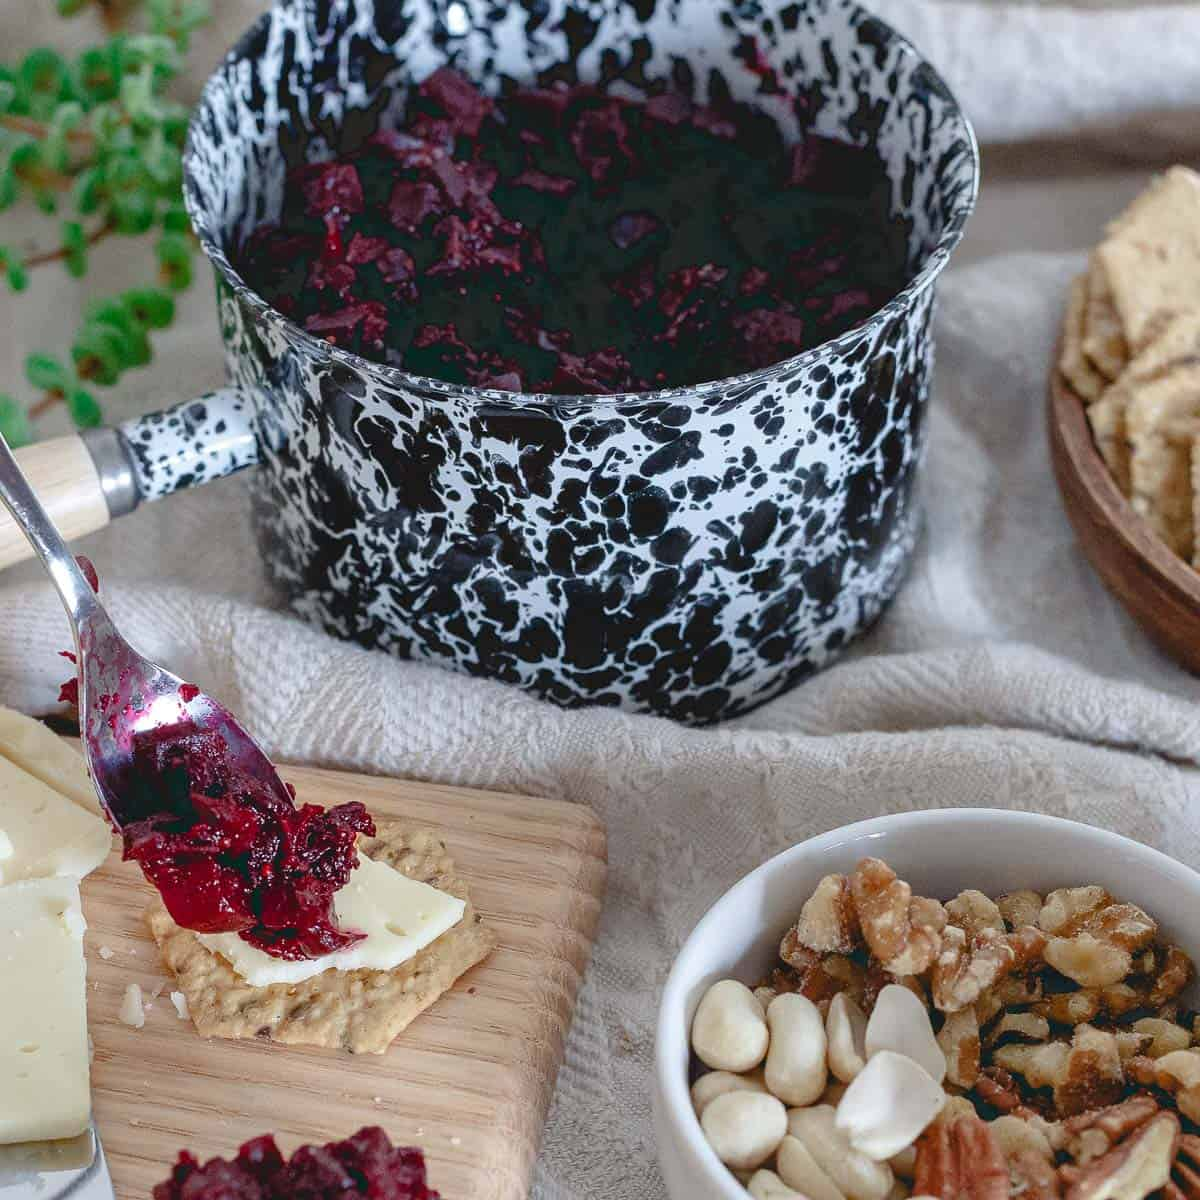 Orange and warm winter spices make this beet apple chutney a delicious addition to any appetizer spread.